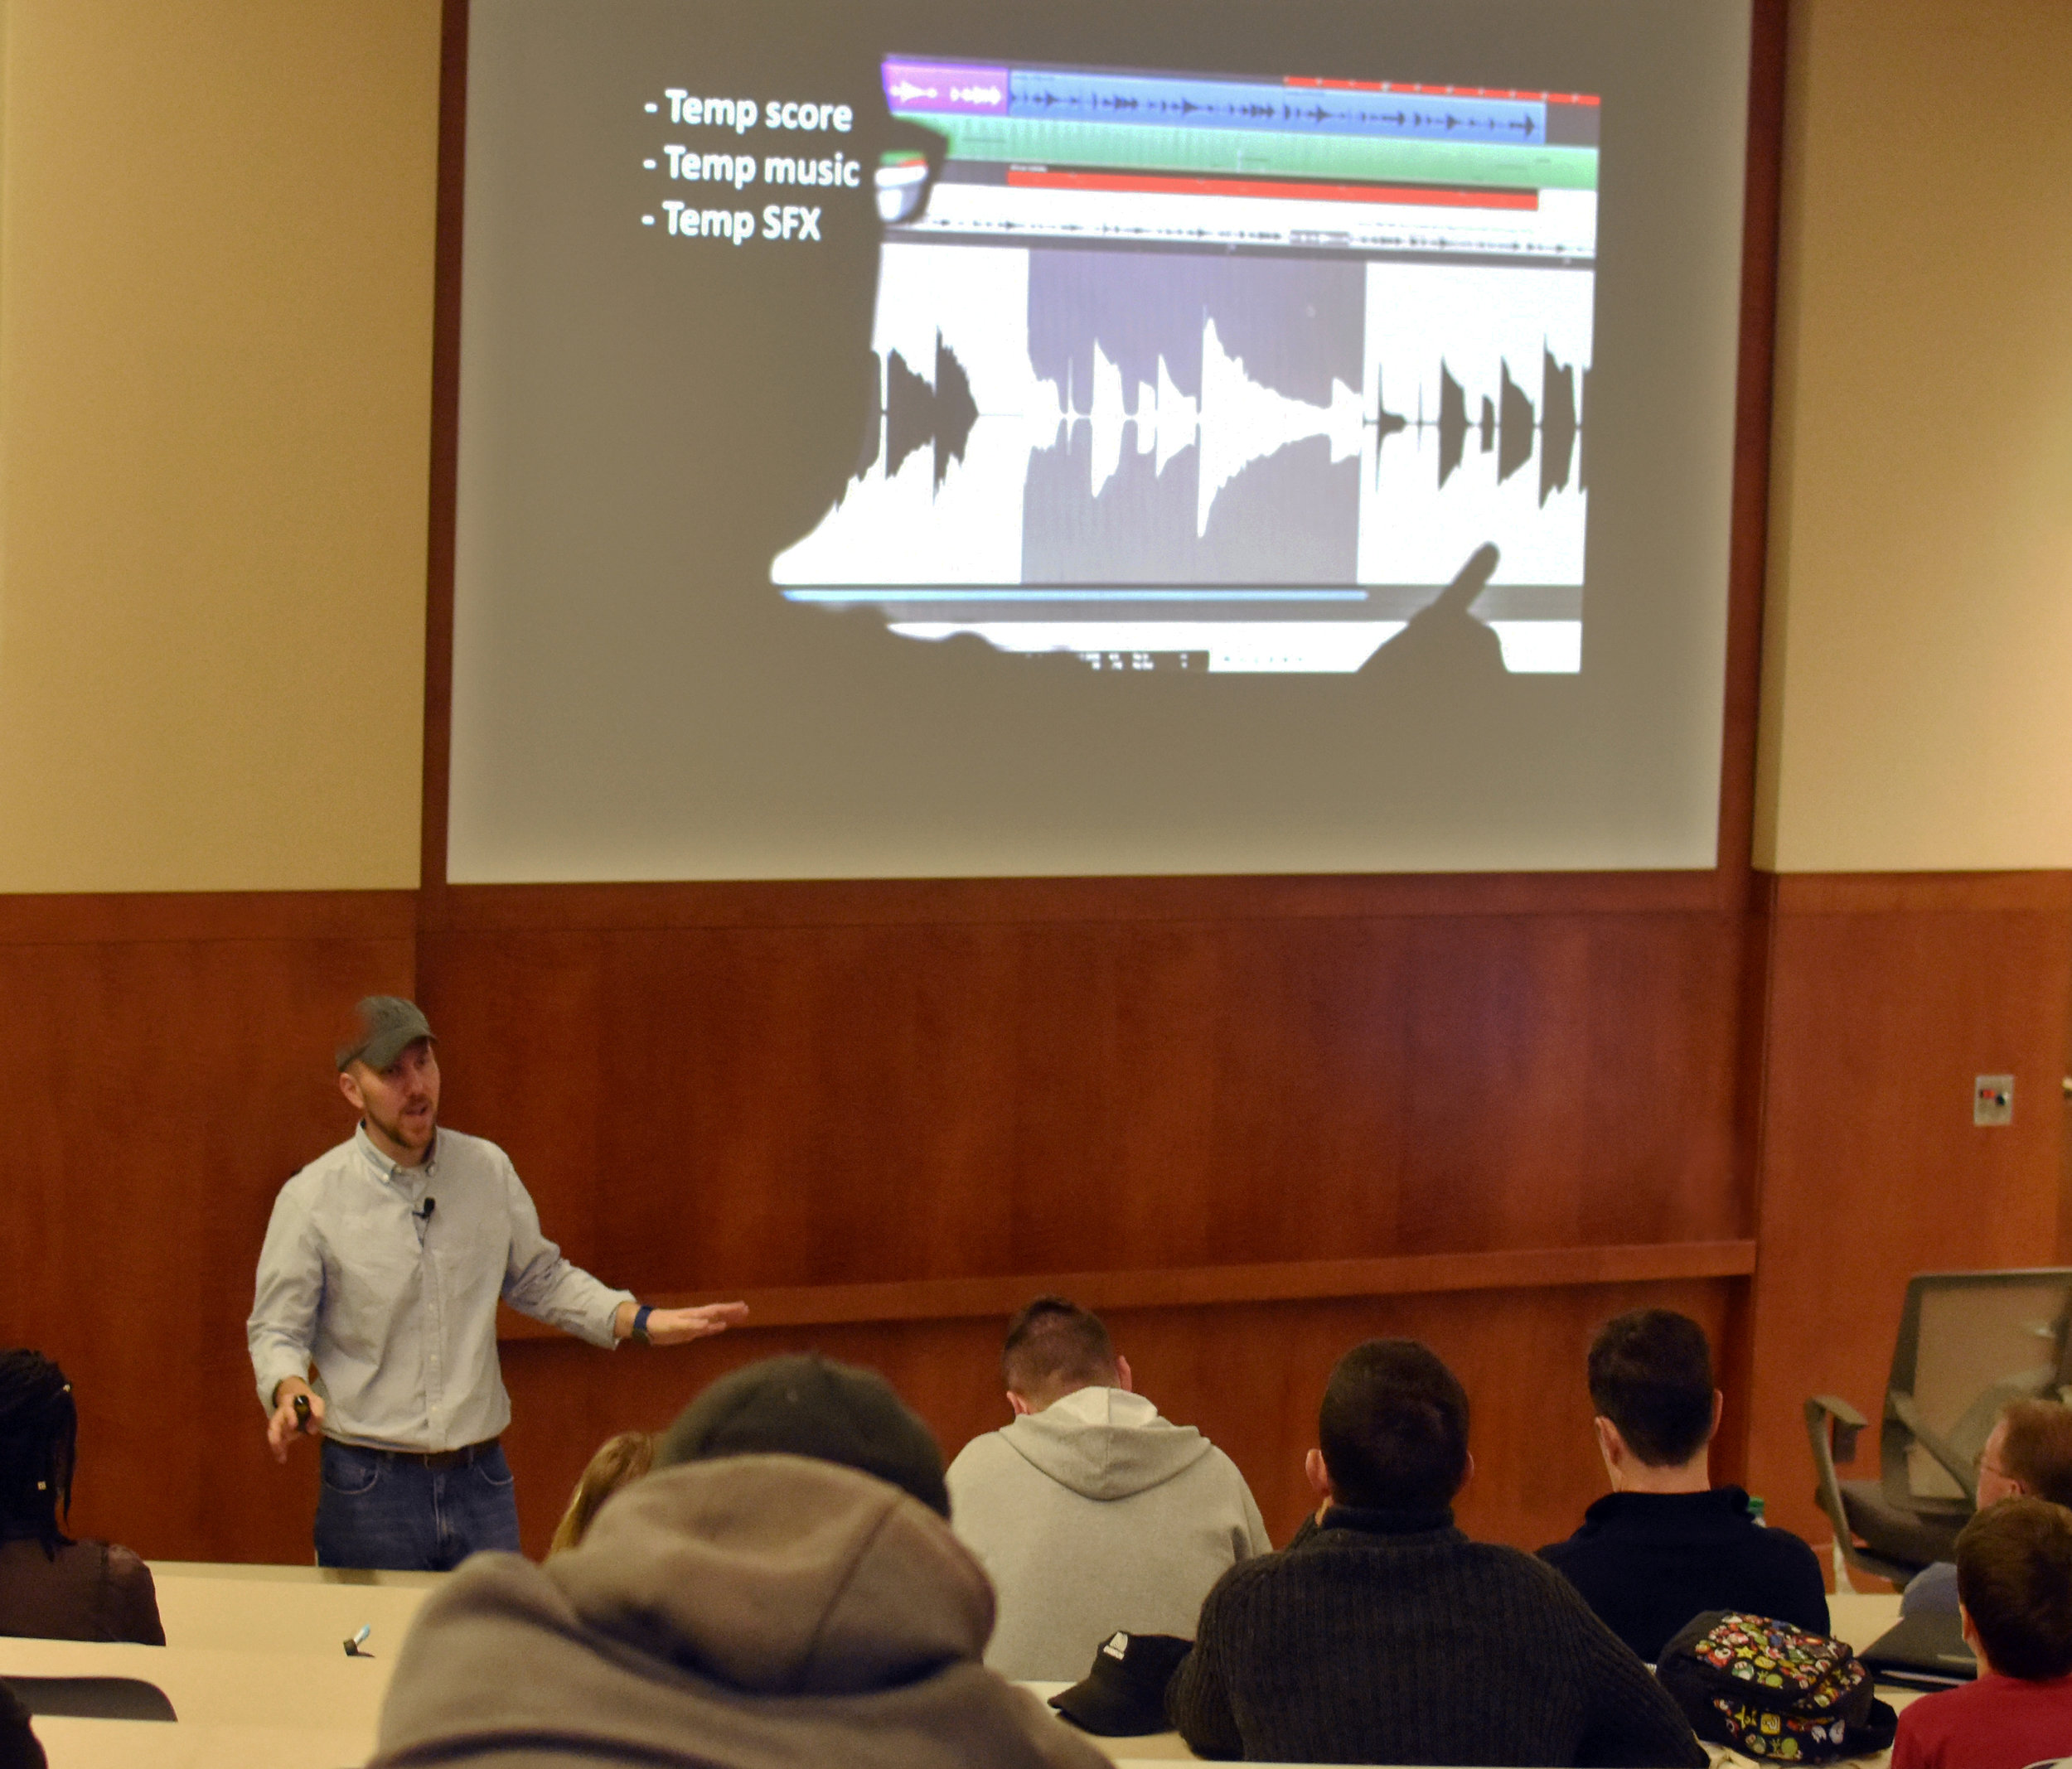 VFX Producer and filmmaker VW Scheich at the Indie Grants'  VFX & Post-Production Pipeline  workshop.